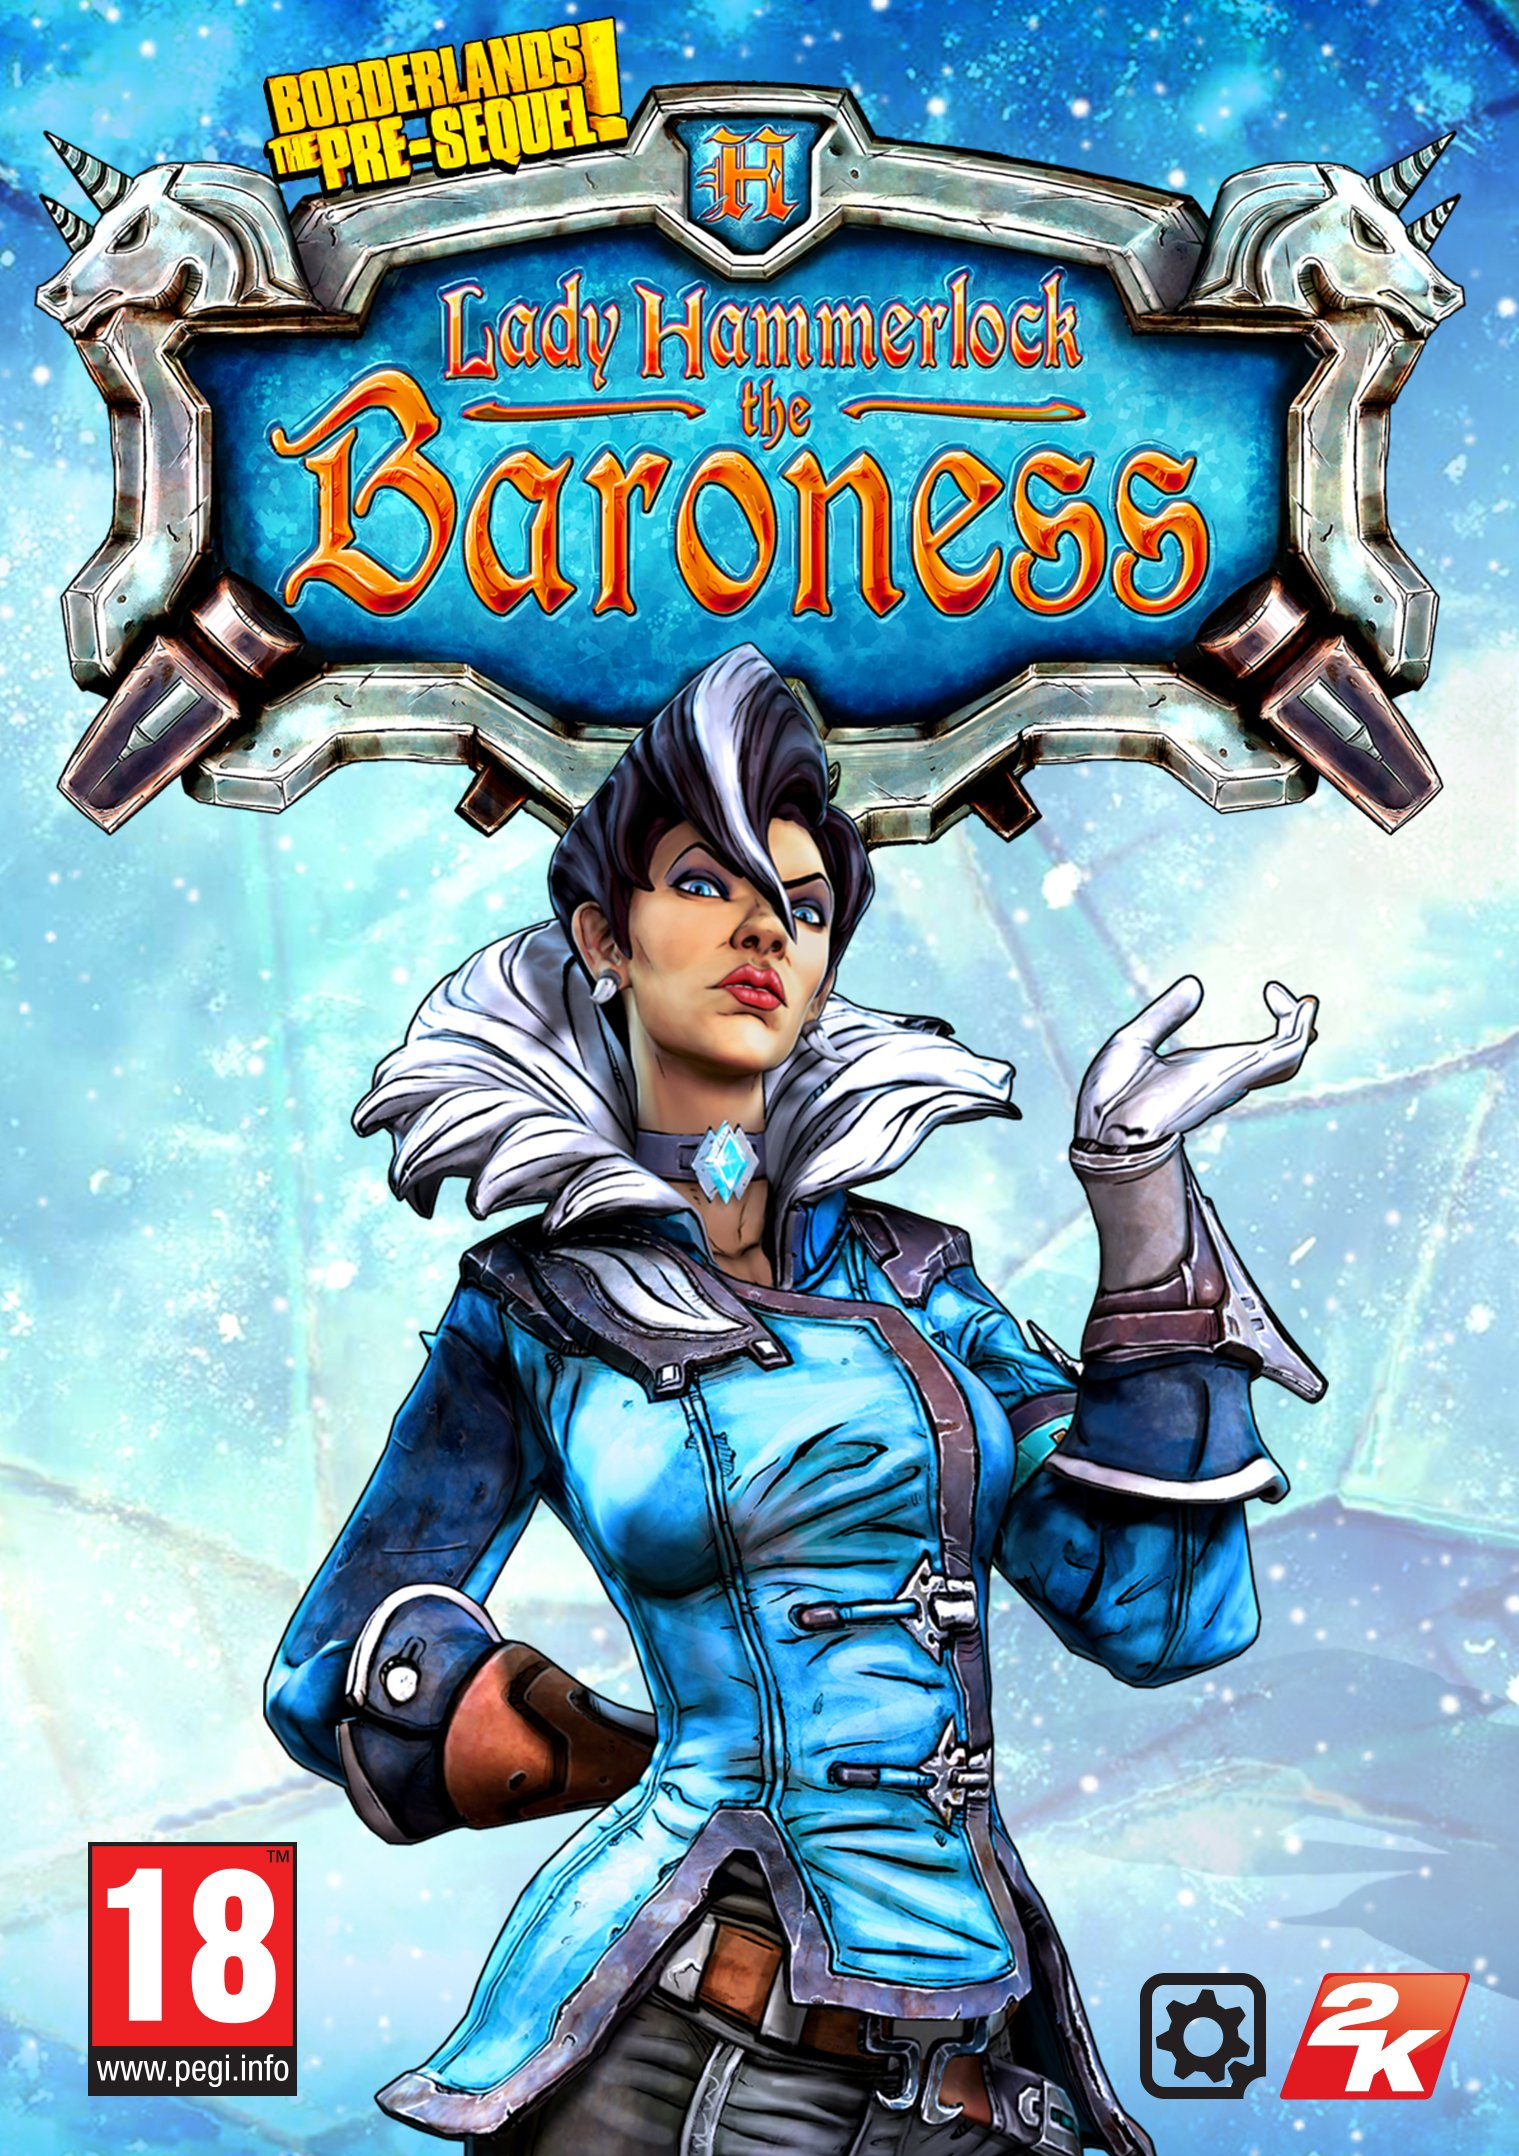 Borderlands: The Pre-sequel - Lady Hammerlock the baroness Pack [PC Code - Steam]